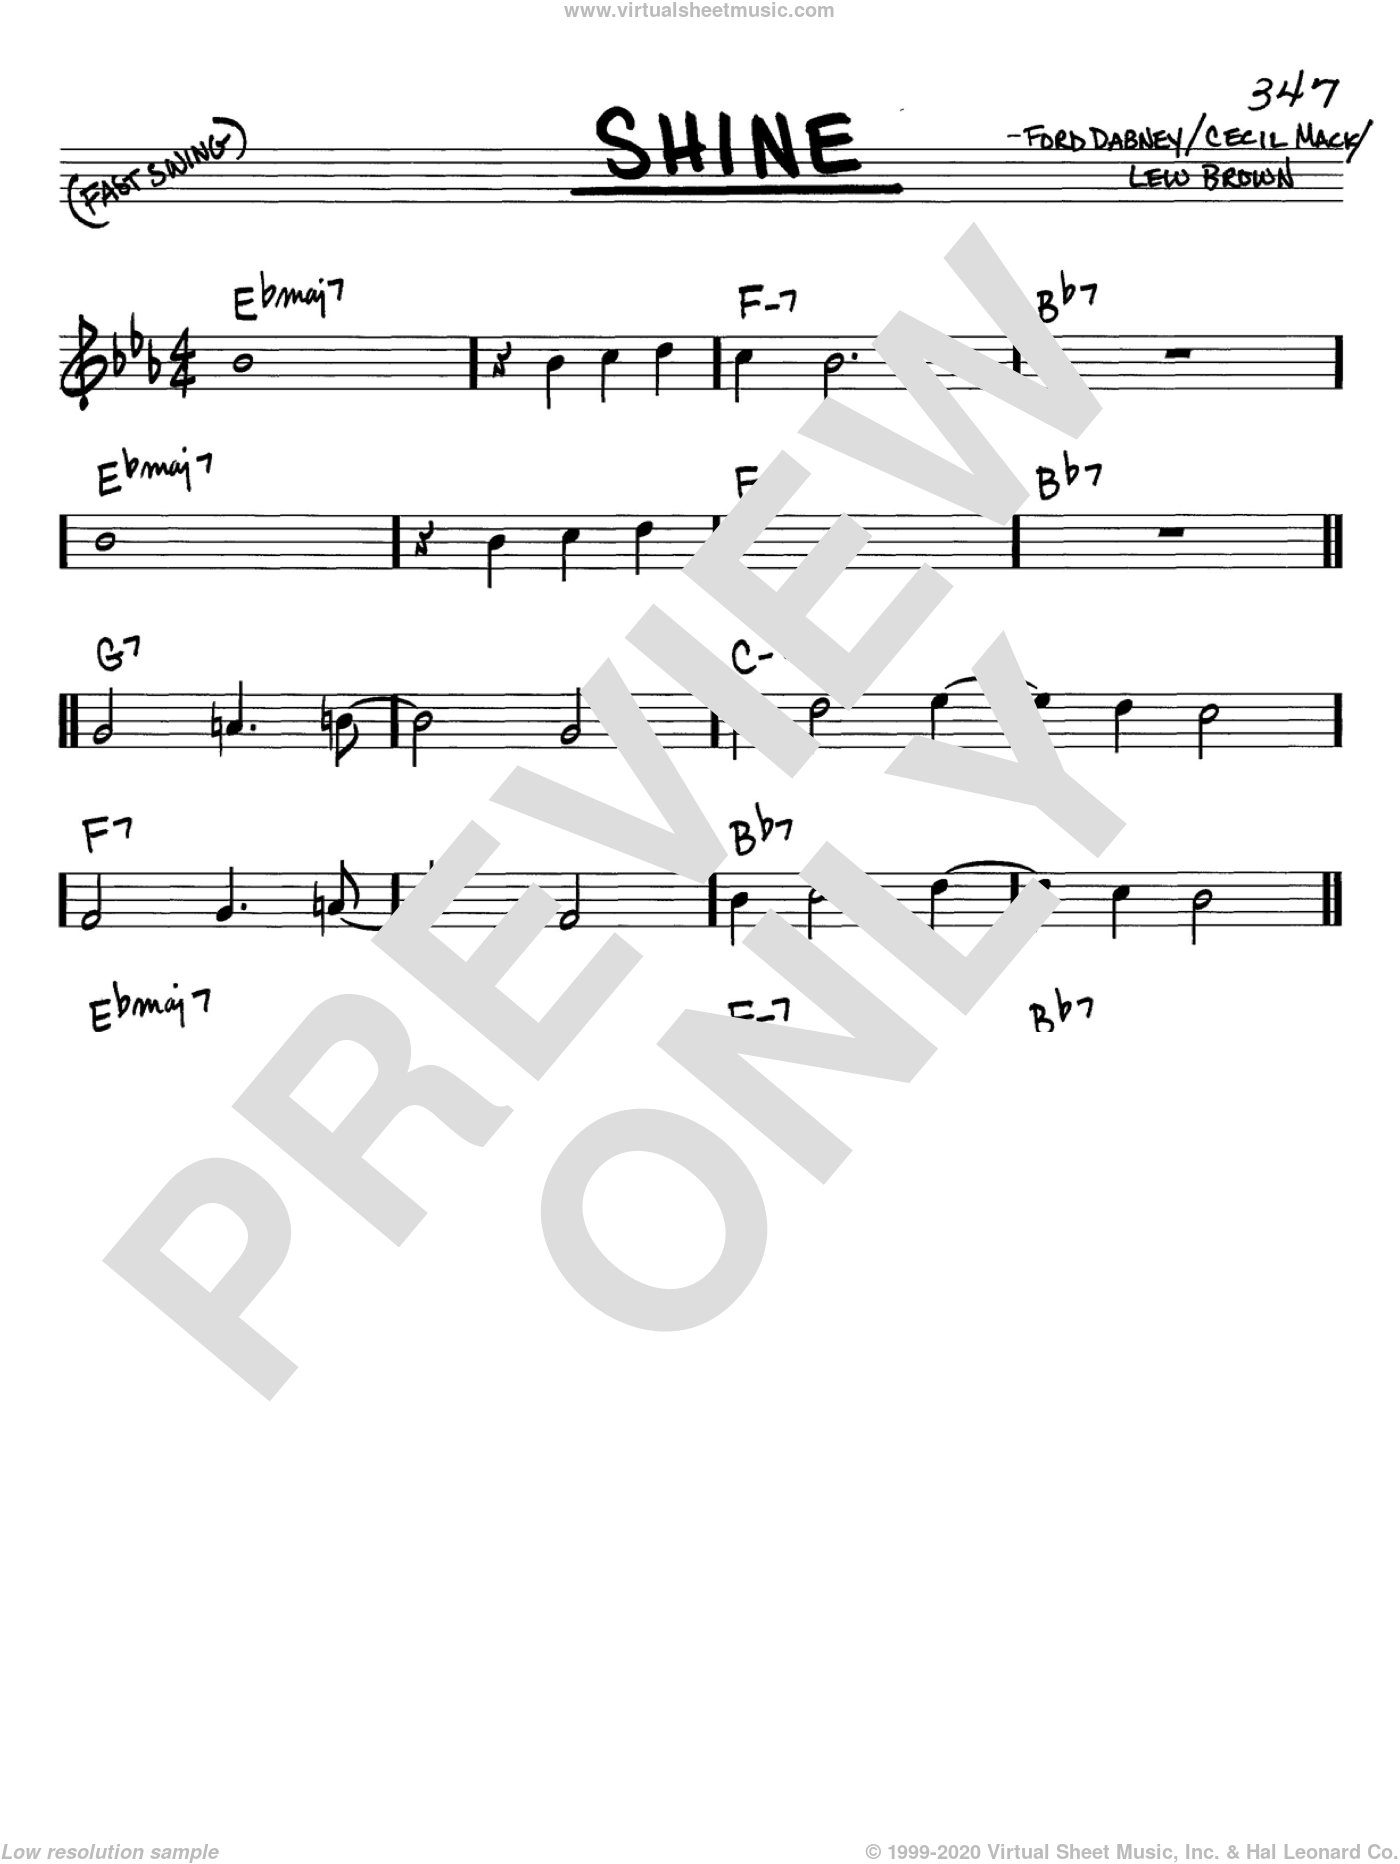 Shine sheet music for voice and other instruments (C) by Ford Dabney